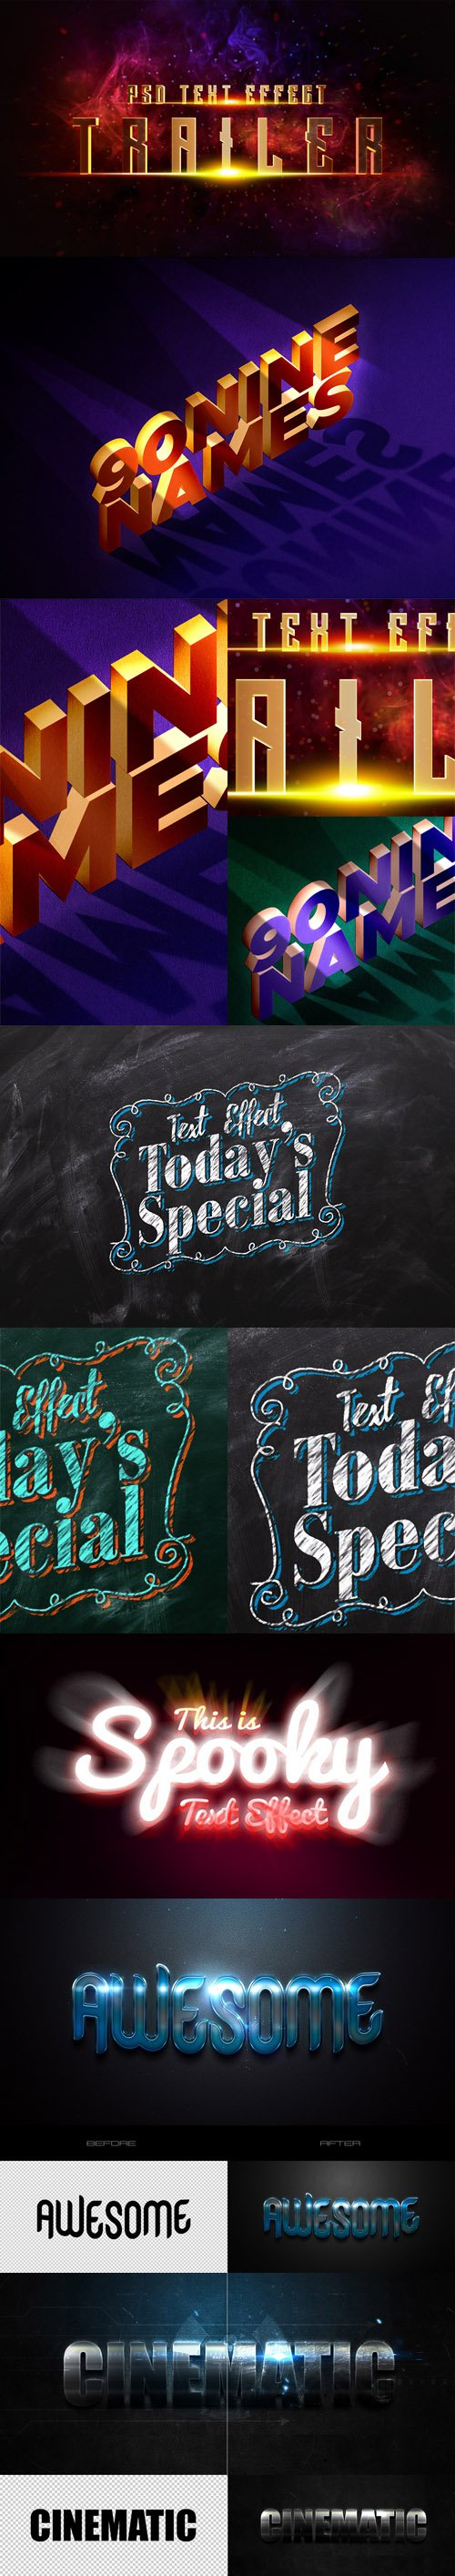 6 Awesome Text Effects & Styles for Photoshop